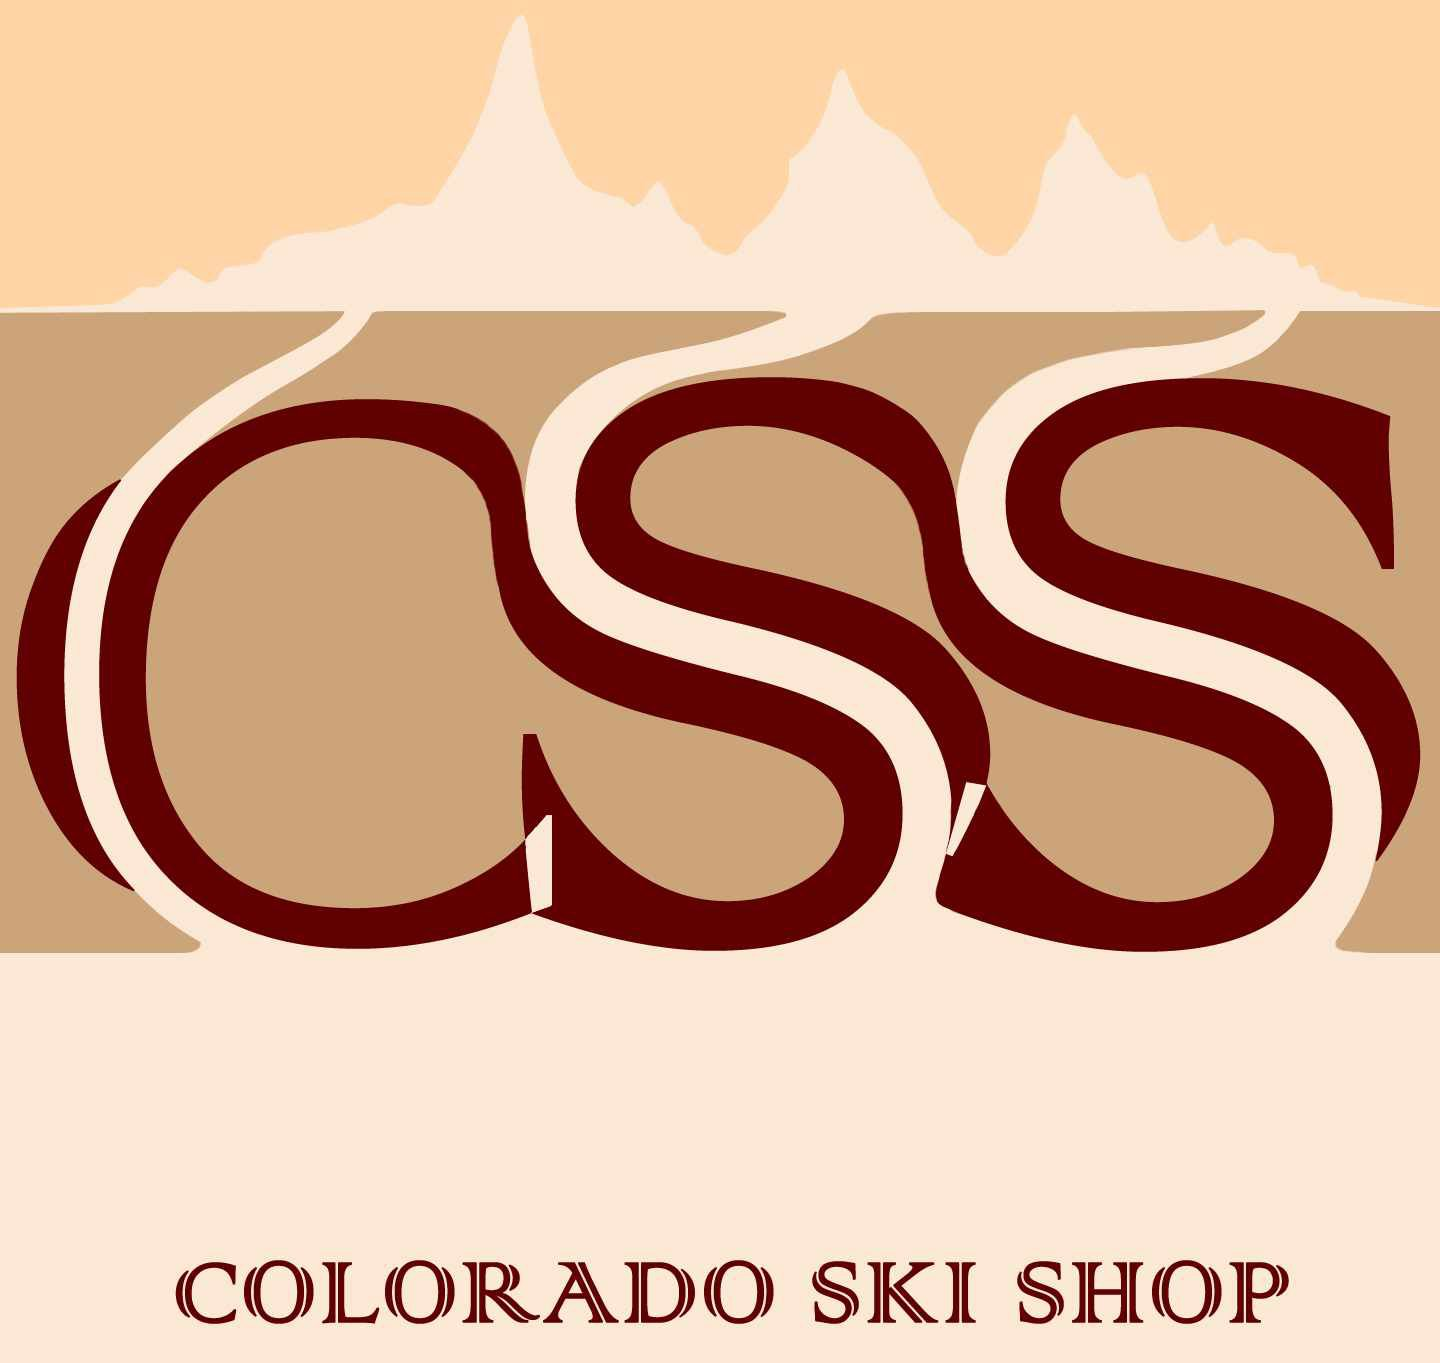 Colorado Ski Shop Contest Entry 2